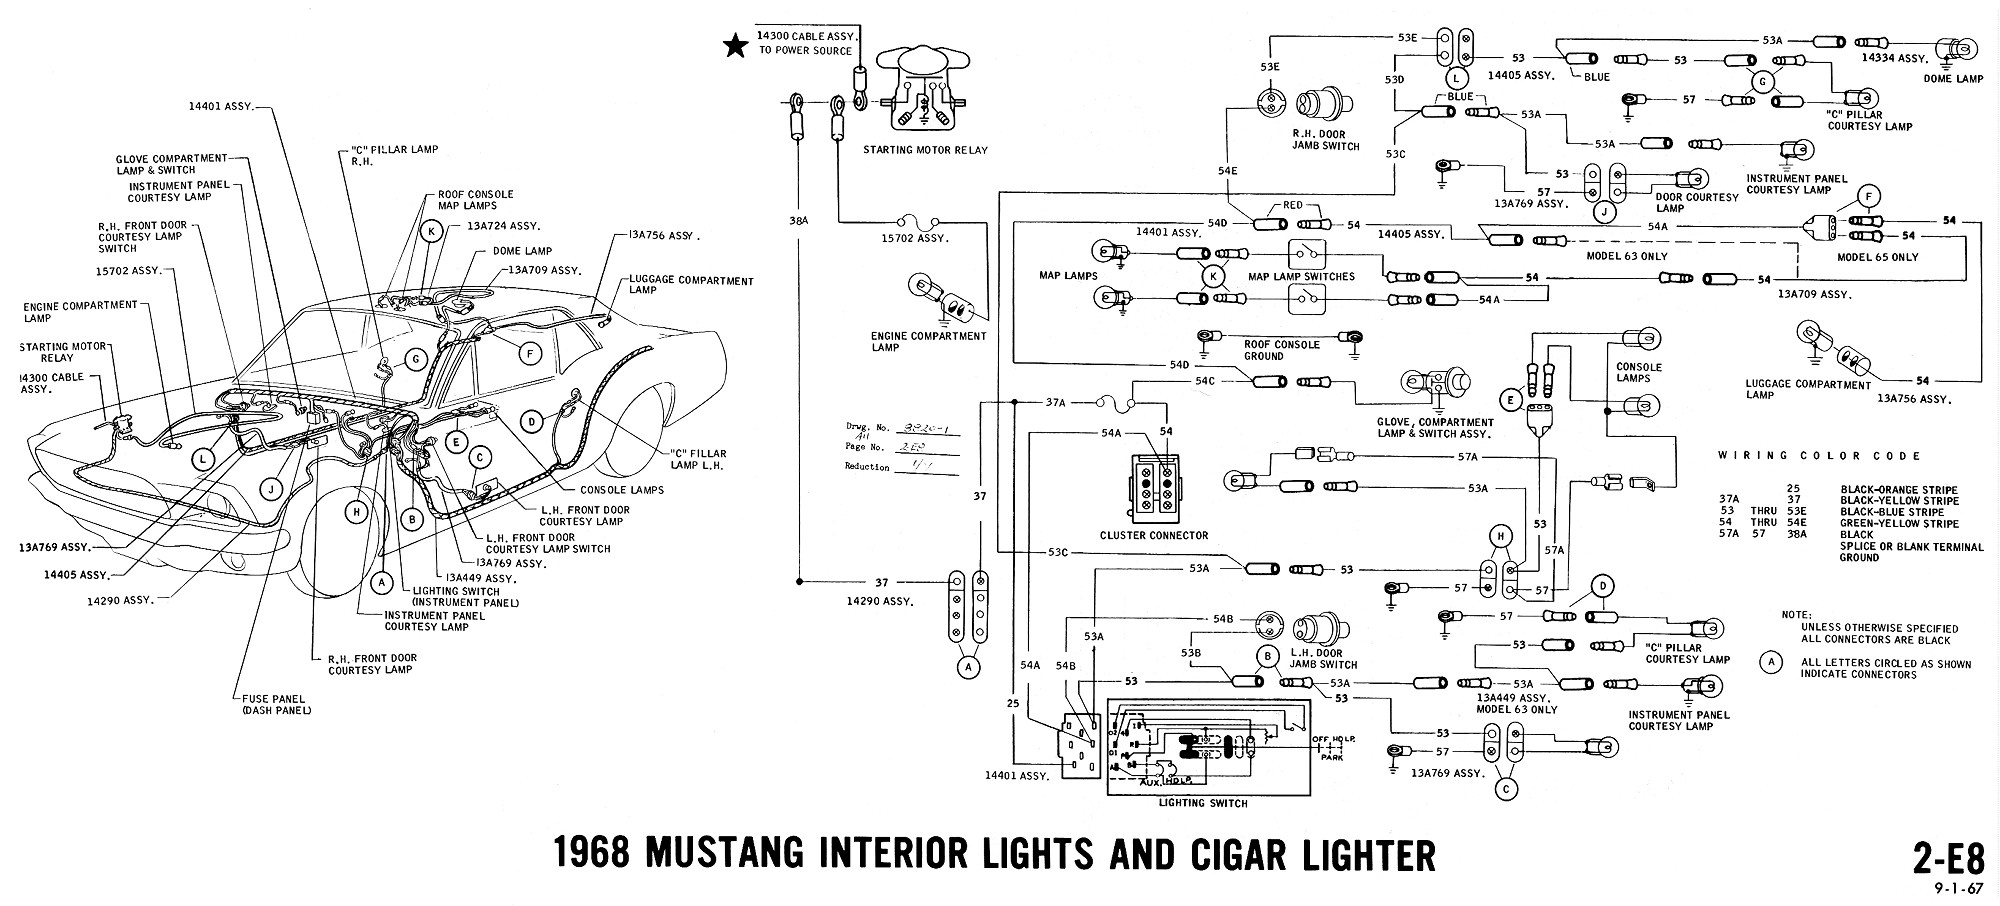 1968 mustang wiring diagram interior lights cigar lighter 1968 mustang wiring diagrams and vacuum schematics average joe engine wiring diagram 1967 mustang v8 at mifinder.co